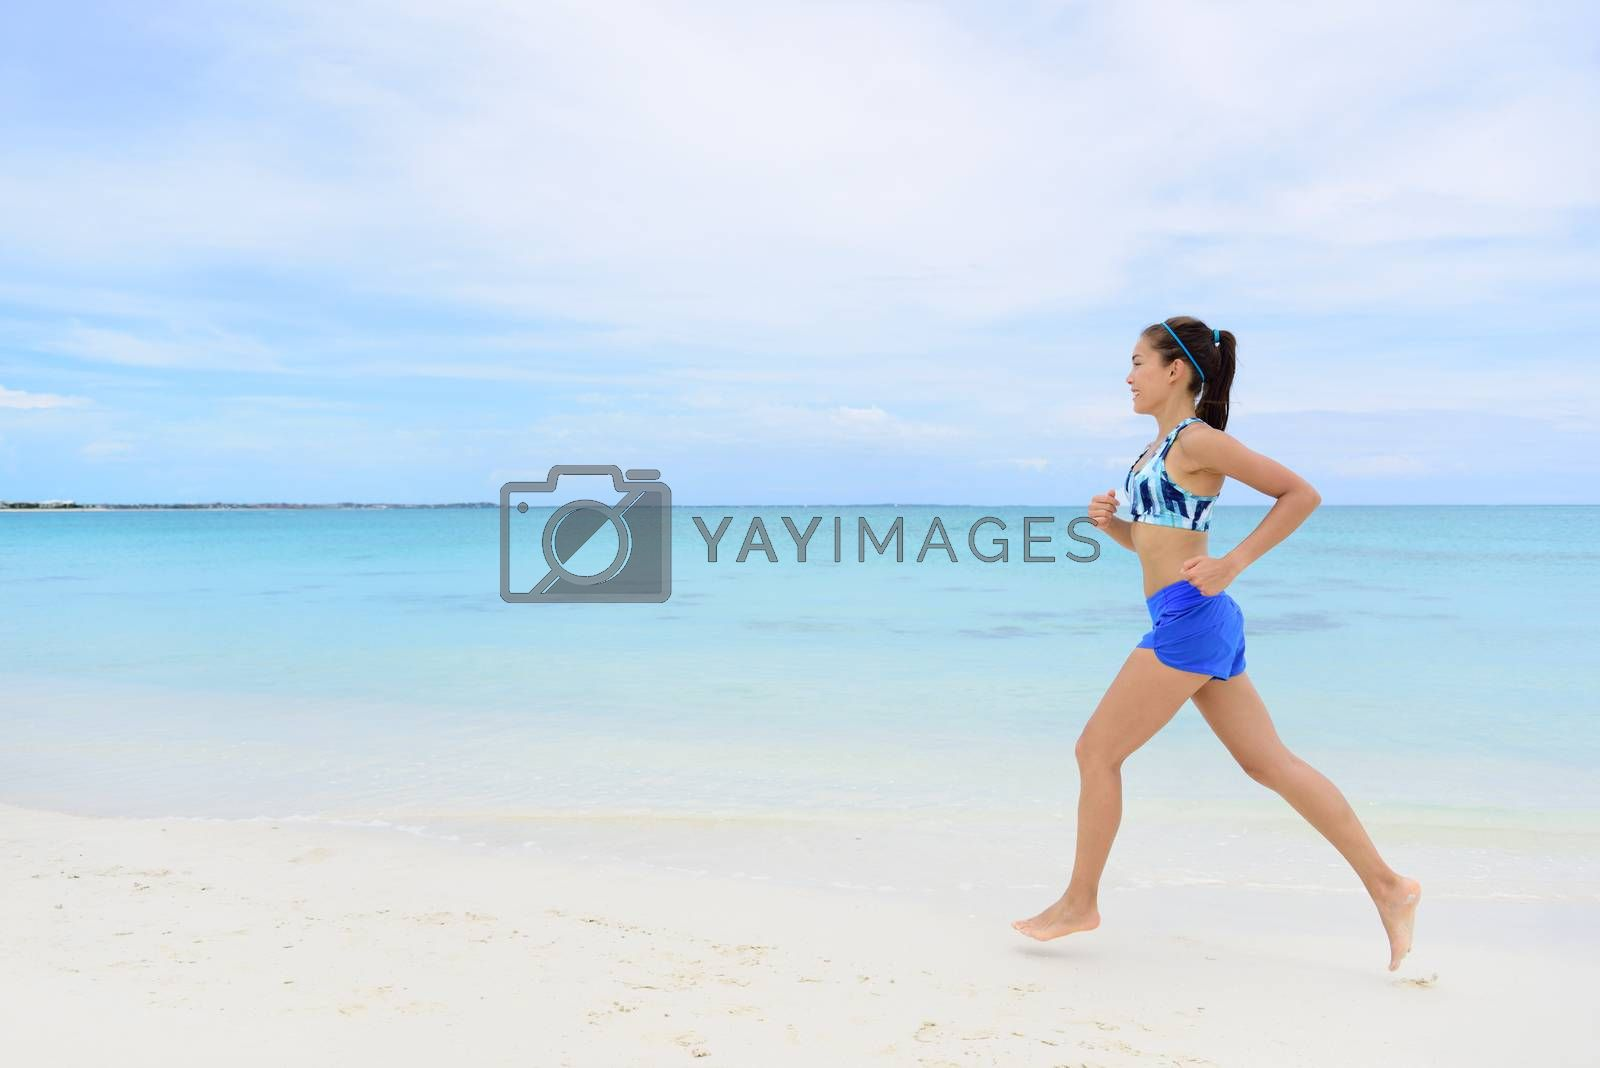 Healthy and active lifestyle running woman jogging on beach. Full length young female adult doing morning cardio workout barefoot in white sand and turquoise ocean background.